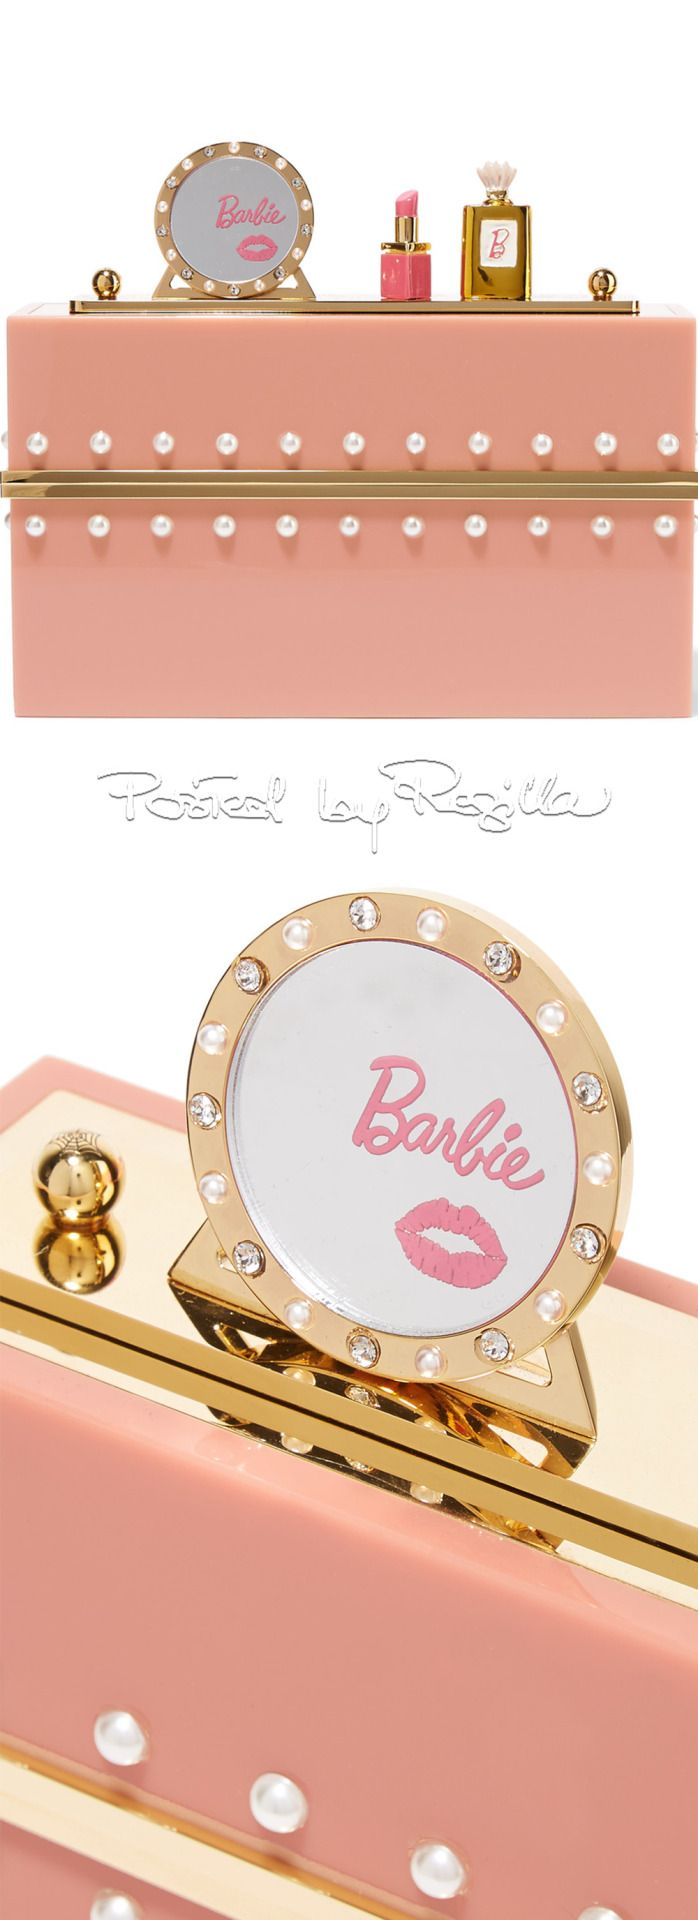 Regilla ⚜ Charlotte Olympia Más Clothing, Shoes & Jewelry - Women - handmade handbags & accessories - http://amzn.to/2kdX3h7